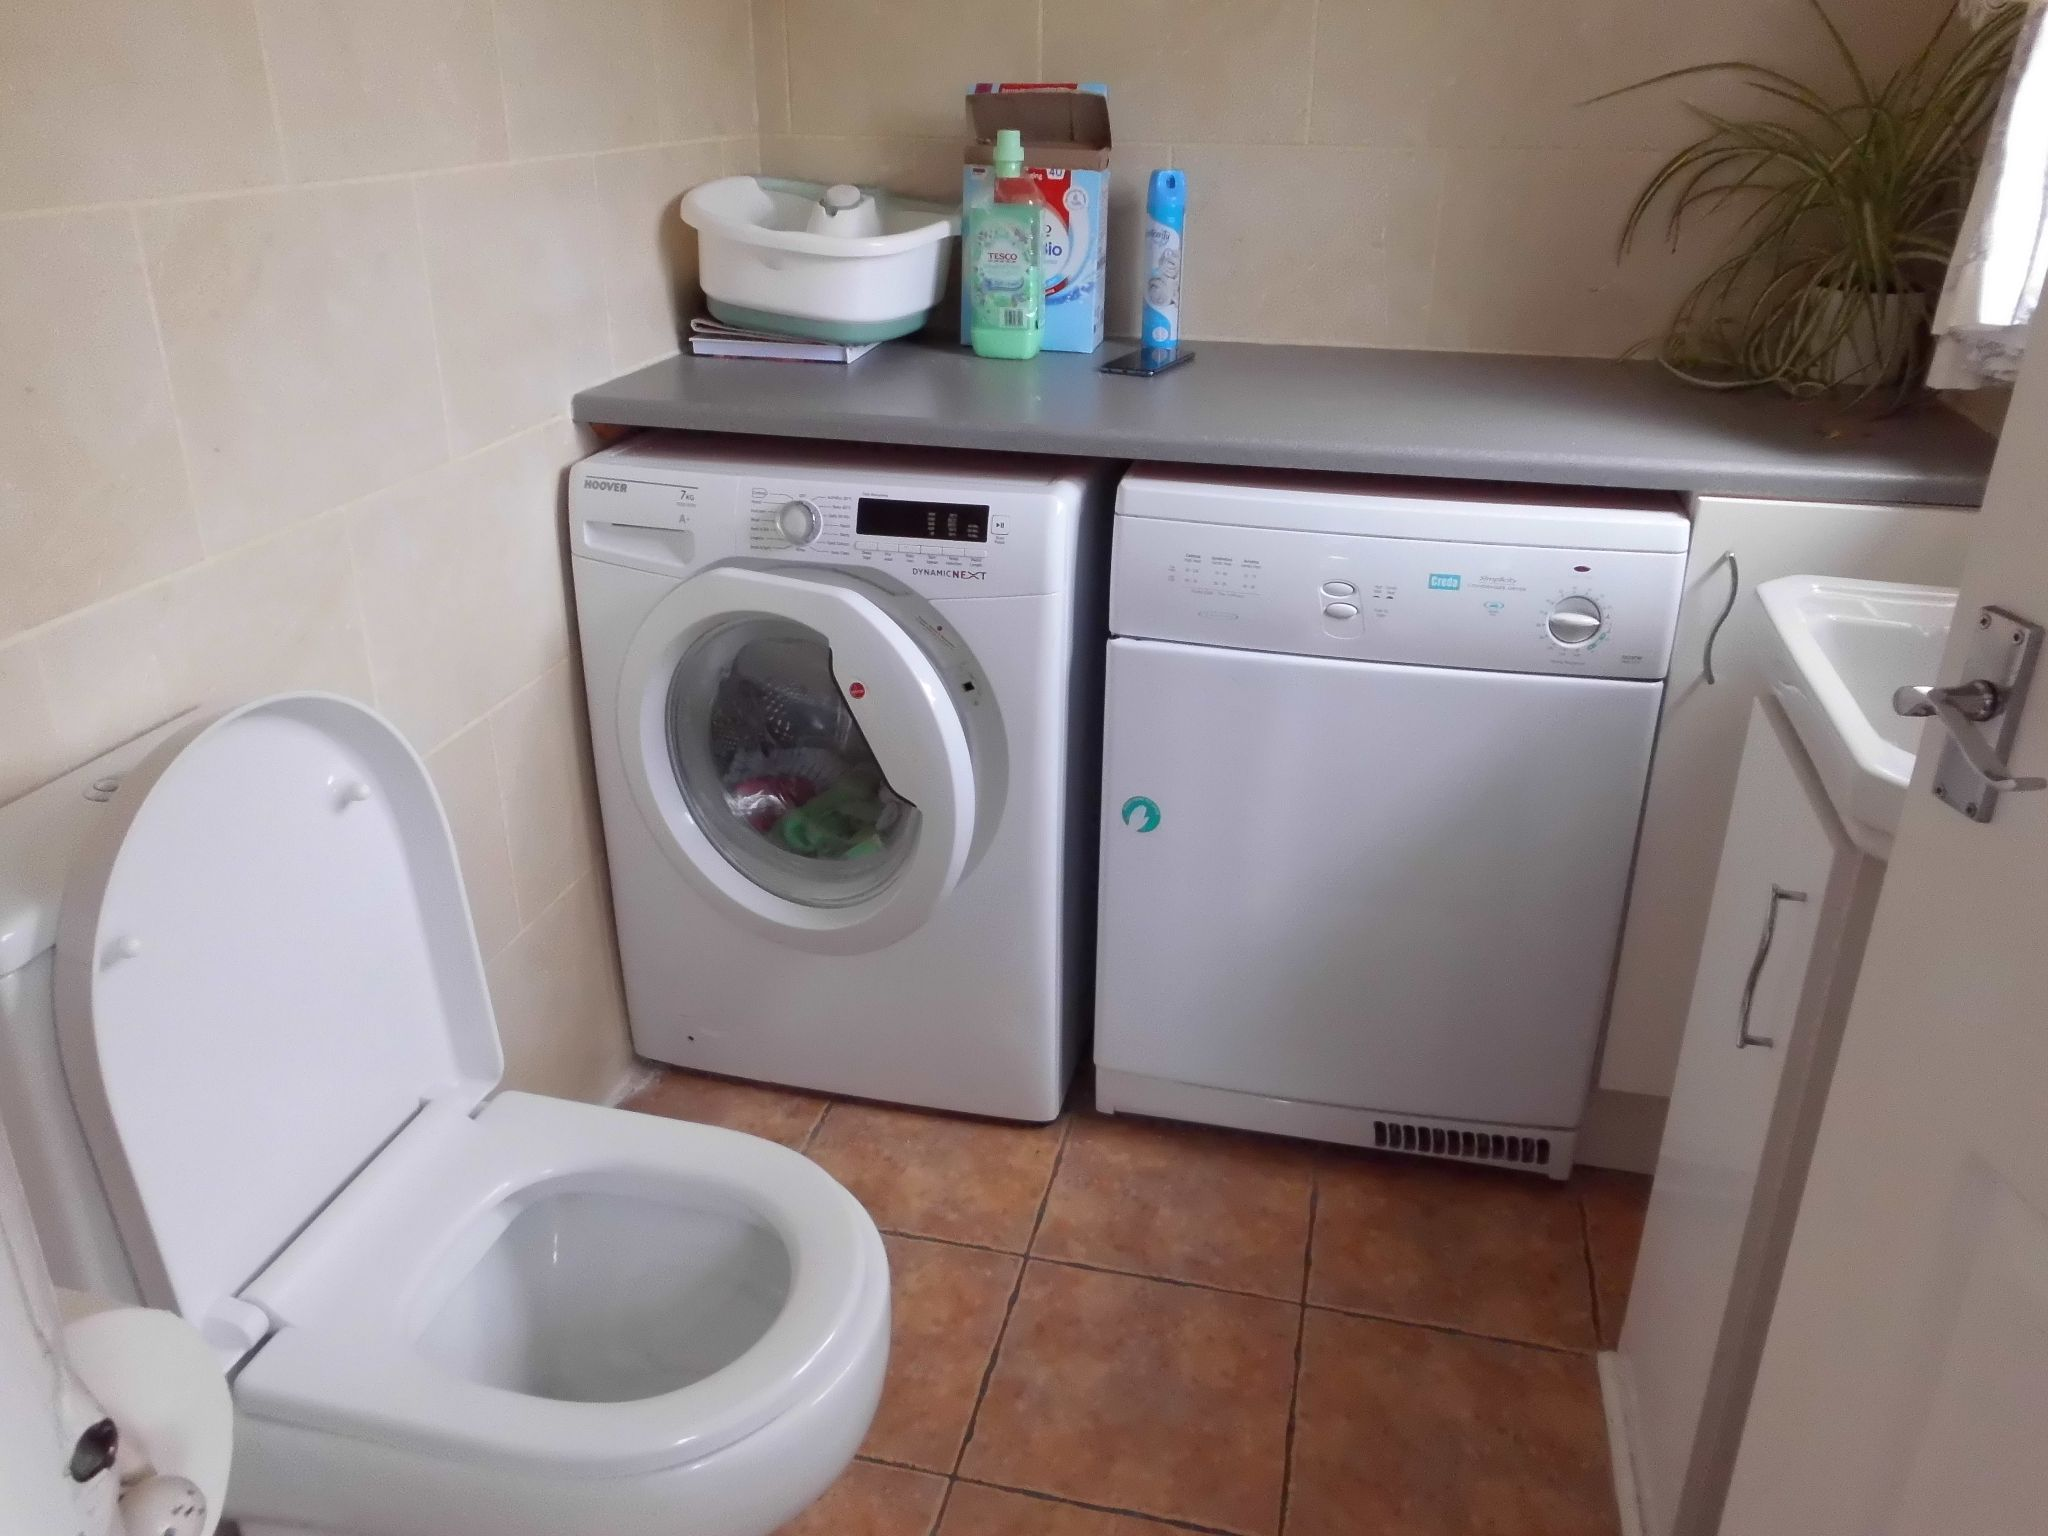 4 bedroom detached house For Sale in Leicester - Utility.